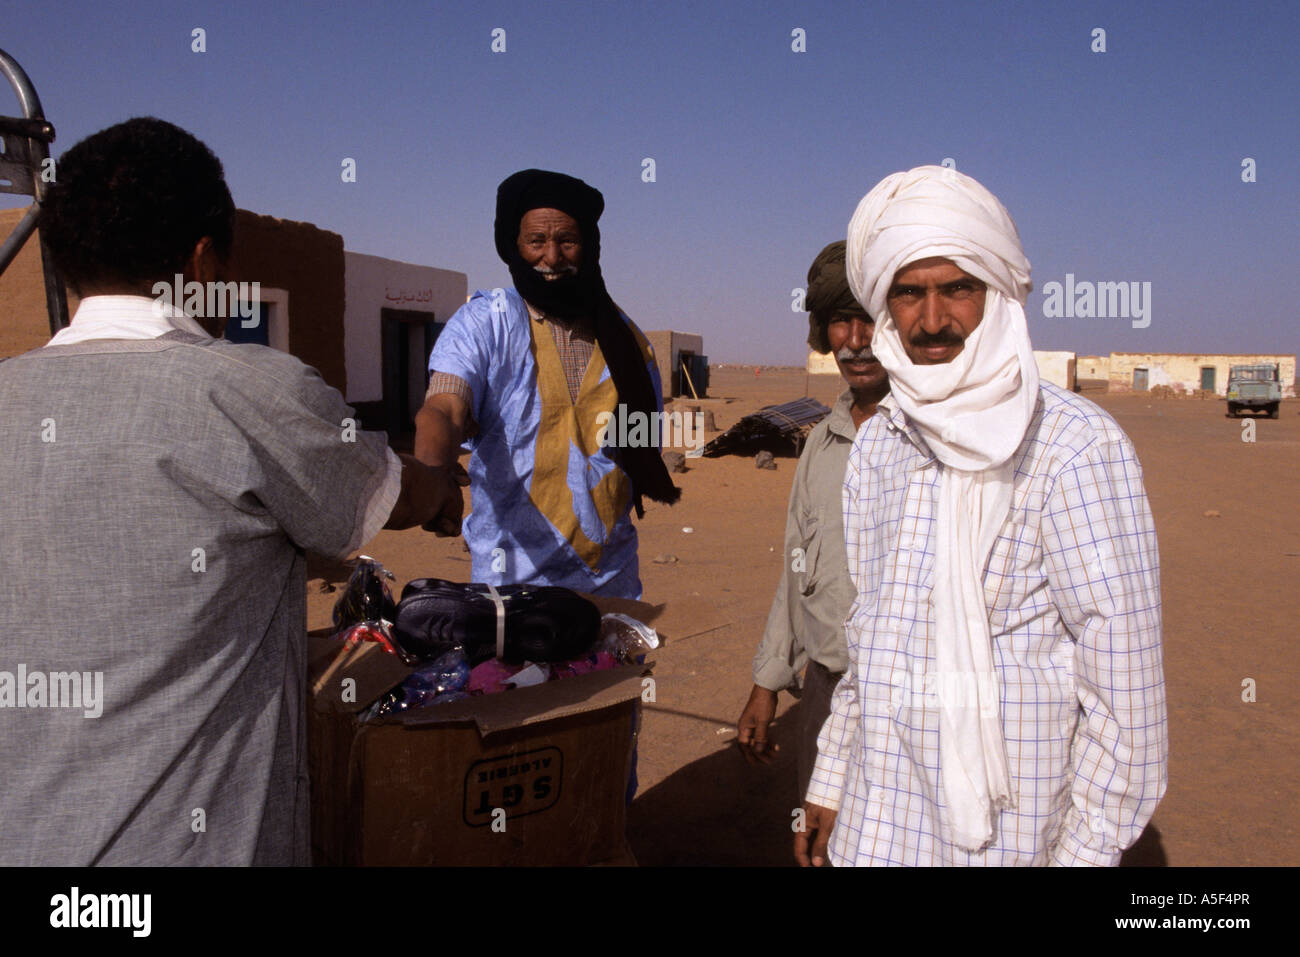 Muslim men in the Saharawi refugee camp in Tindouf Western Algeria - Stock Image